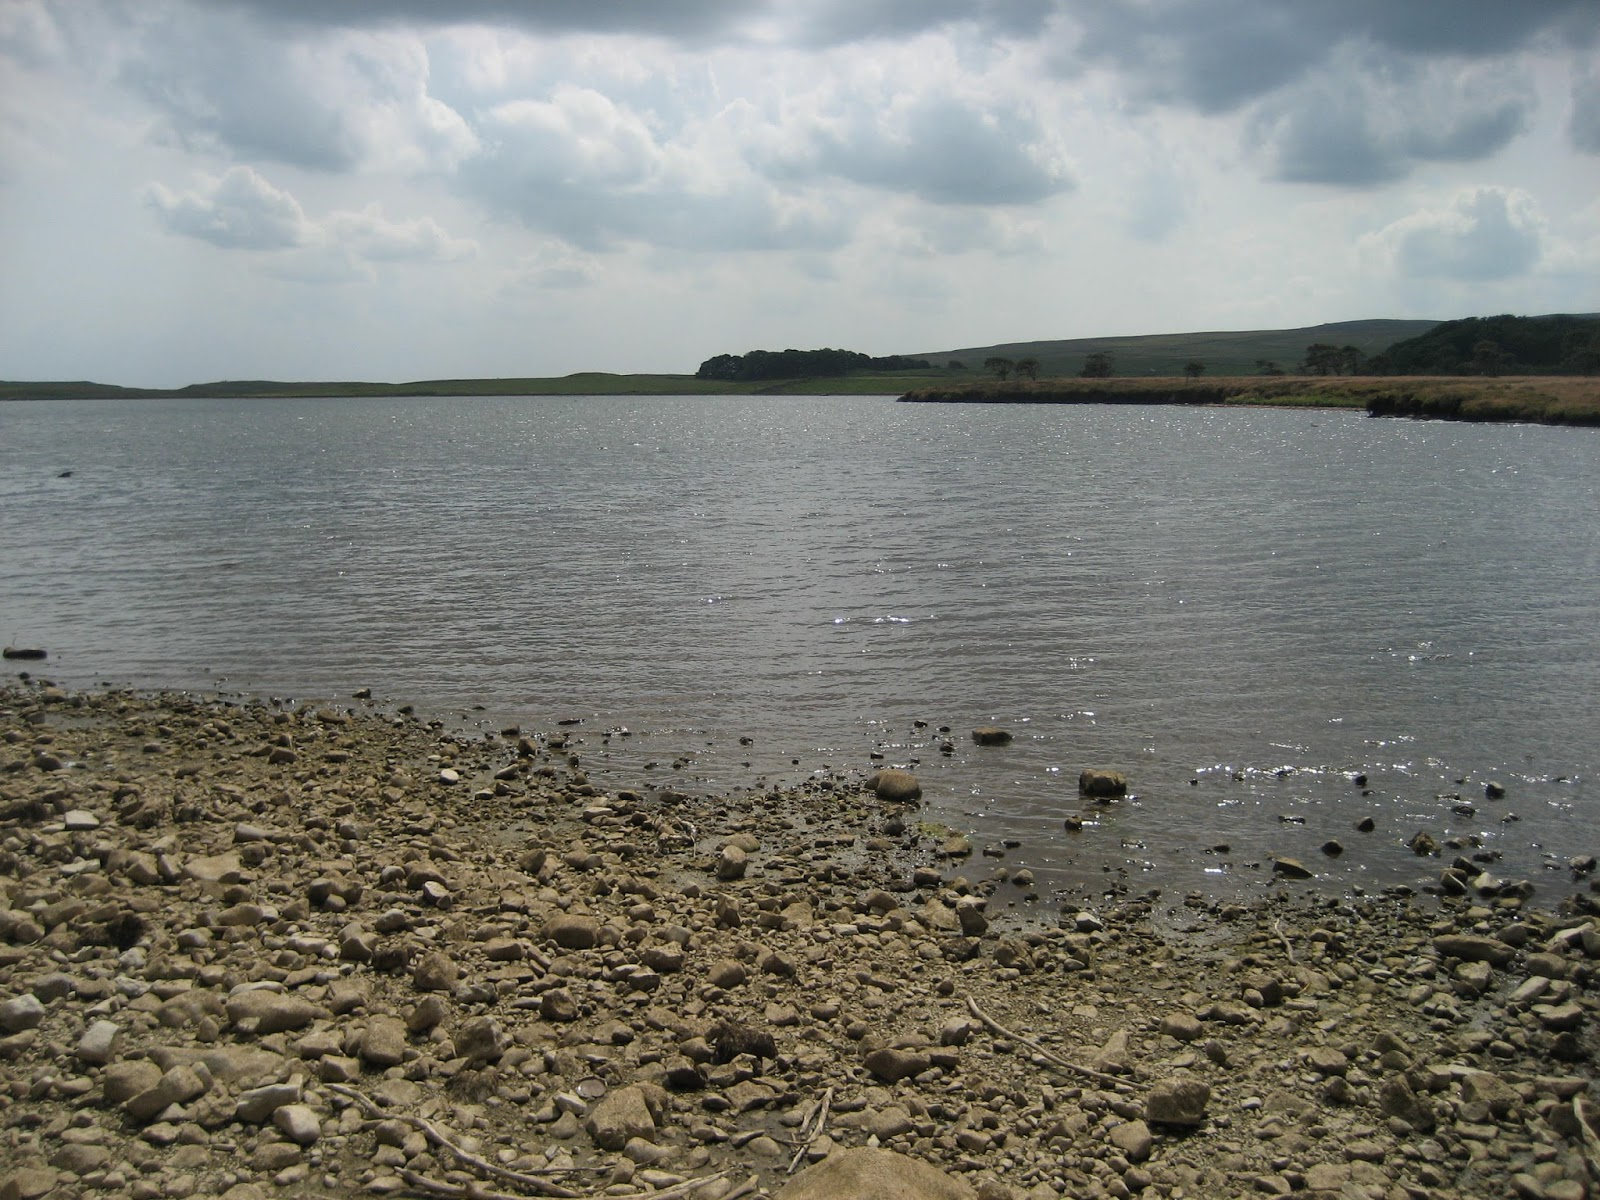 Malham Tarn – lying on a bed of slate brought to the surface by the North Craven Fault. Stephen Oldfield